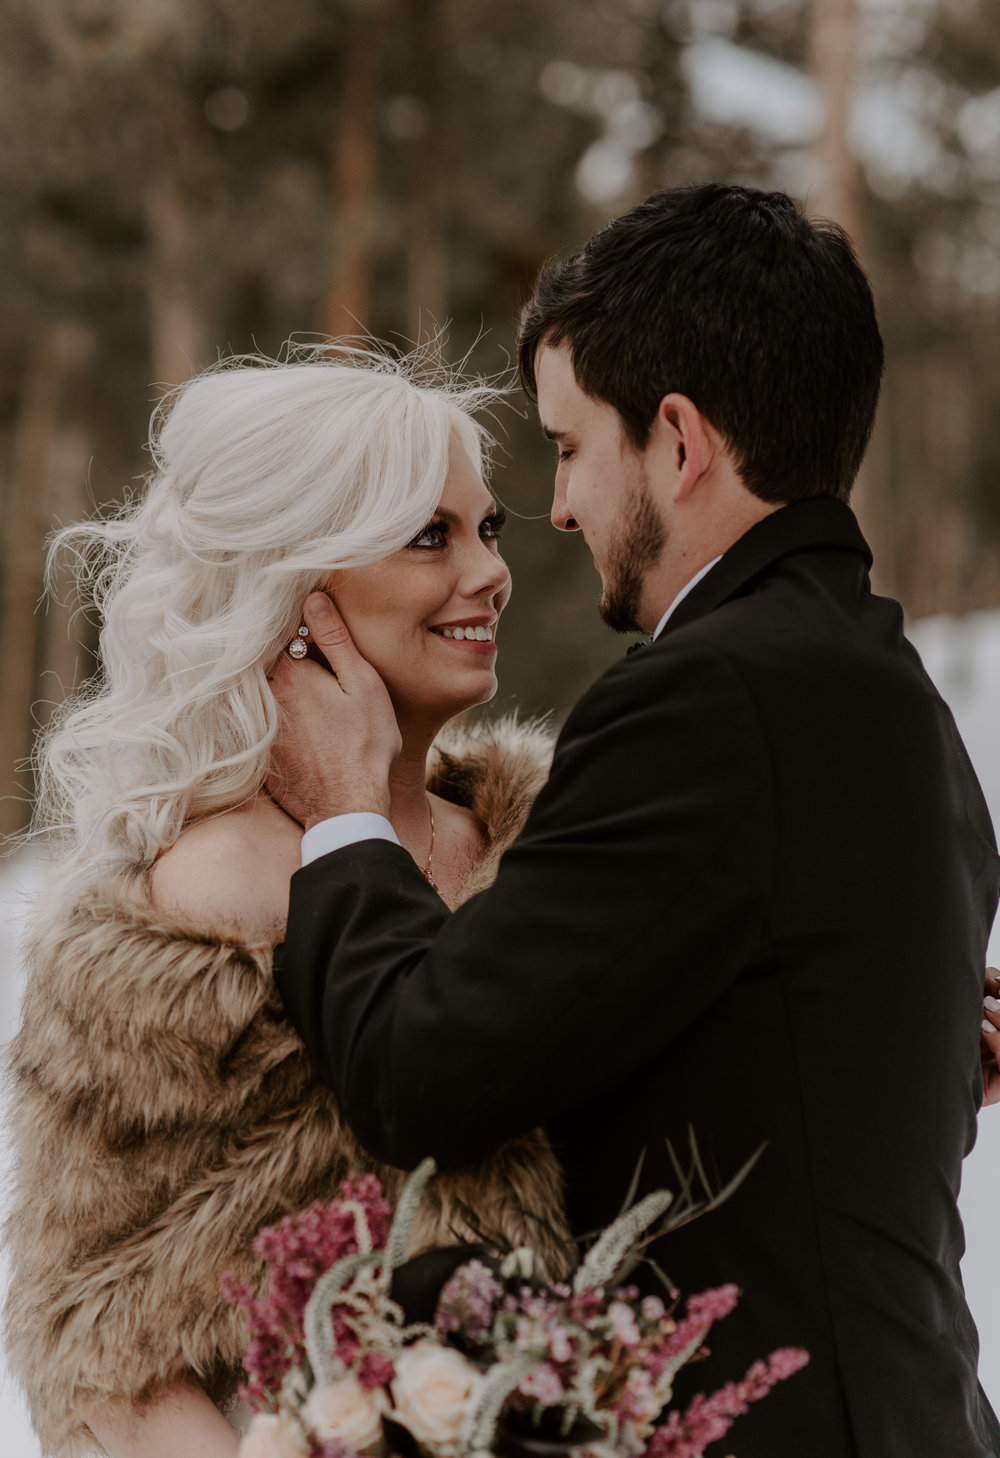 Colorado mountain elopement photographer based in Denver. Adventure wedding photographer.